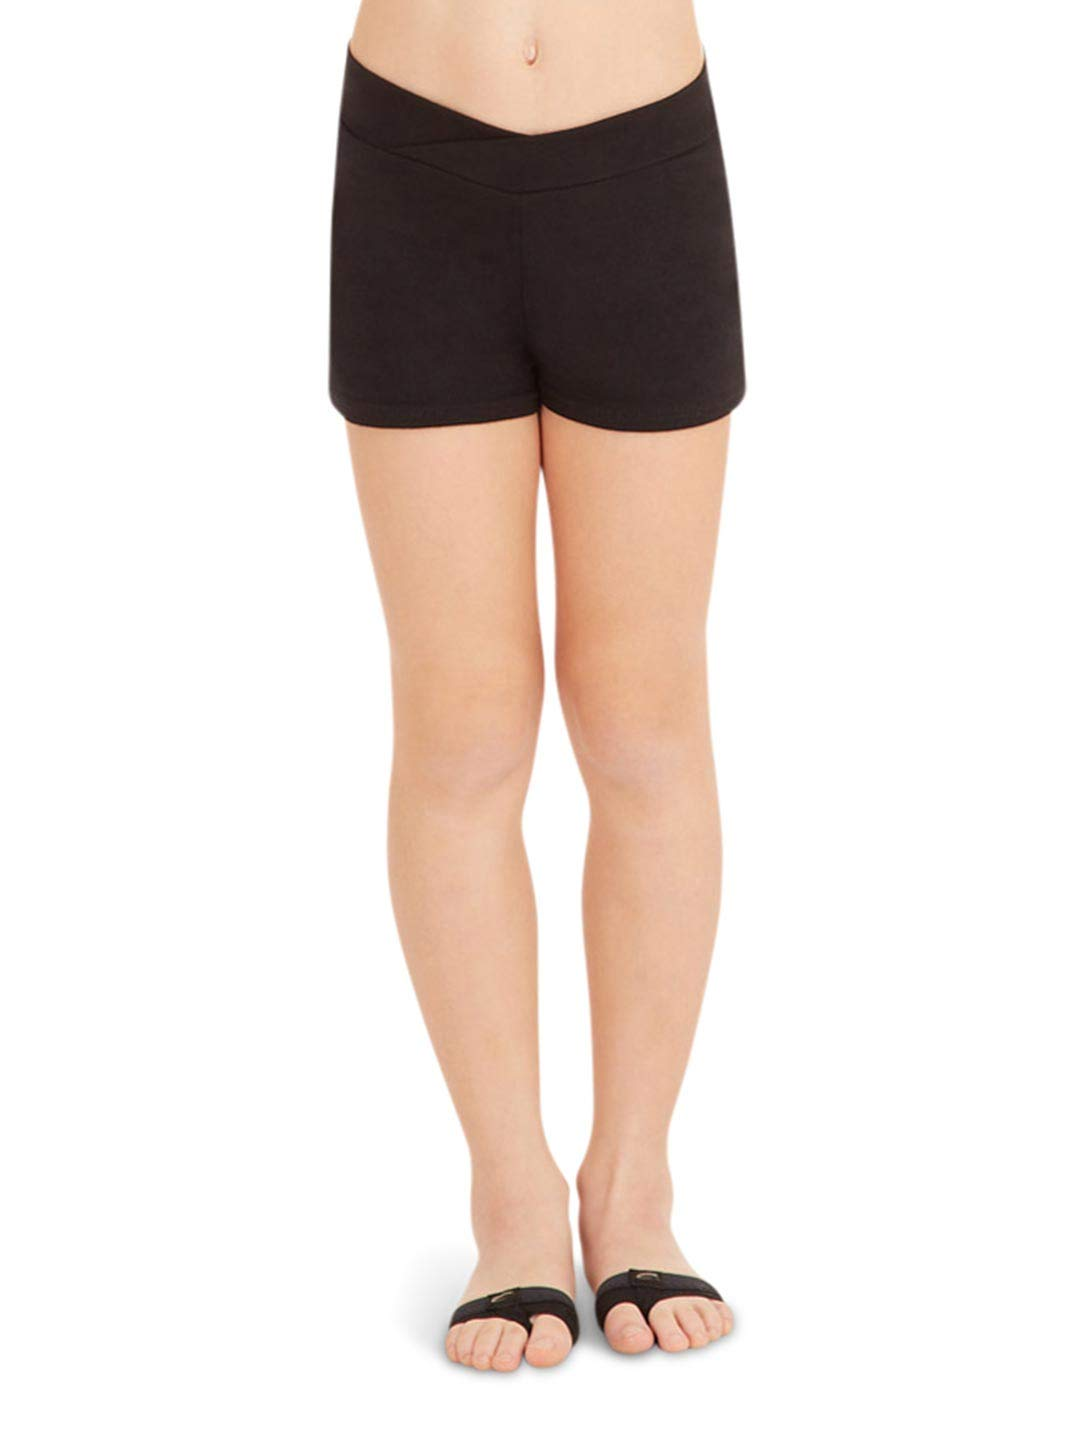 Capezio Big Girls' Boy Short,Black,M (8-10)